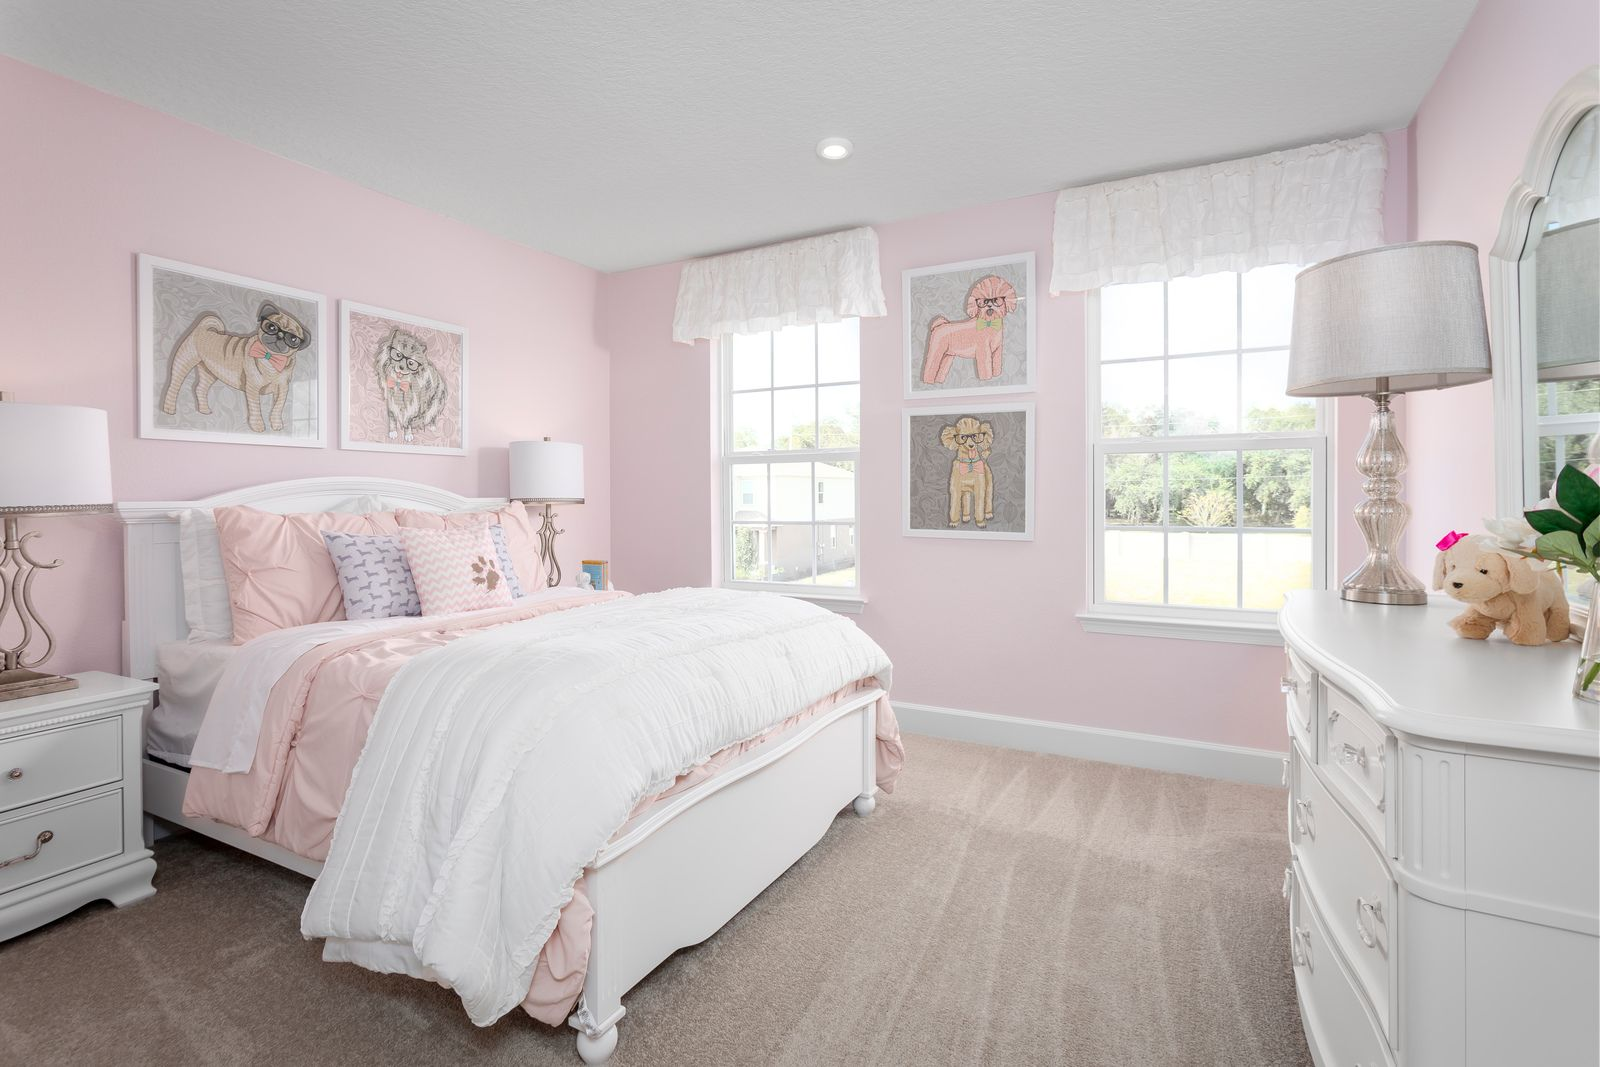 Bedroom featured in the Lynn Haven By Ryan Homes in Orlando, FL